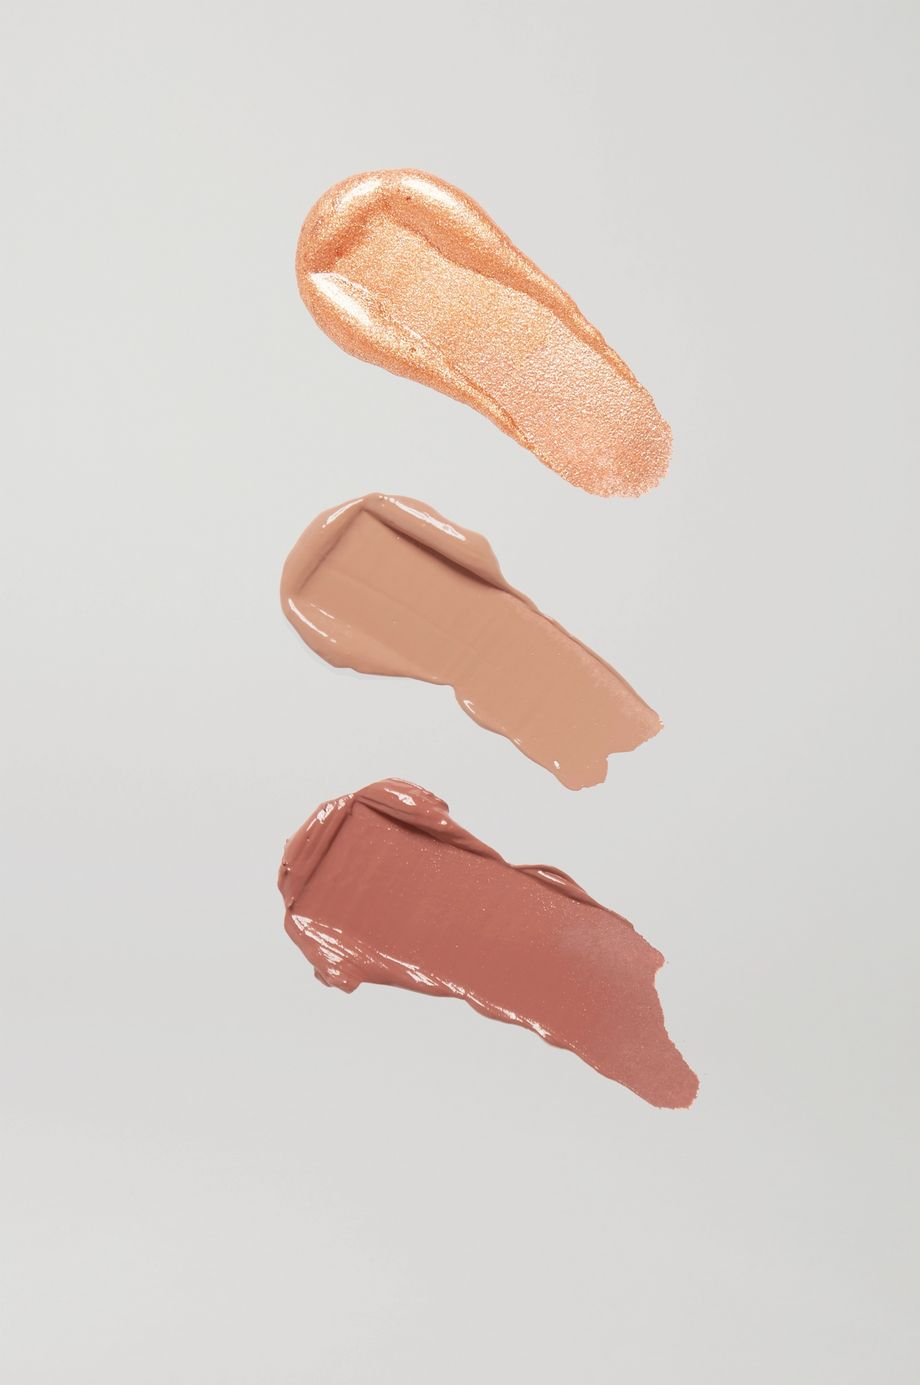 Huda Beauty Mini Melted Shadows – Warm Browns – Lidschattenset